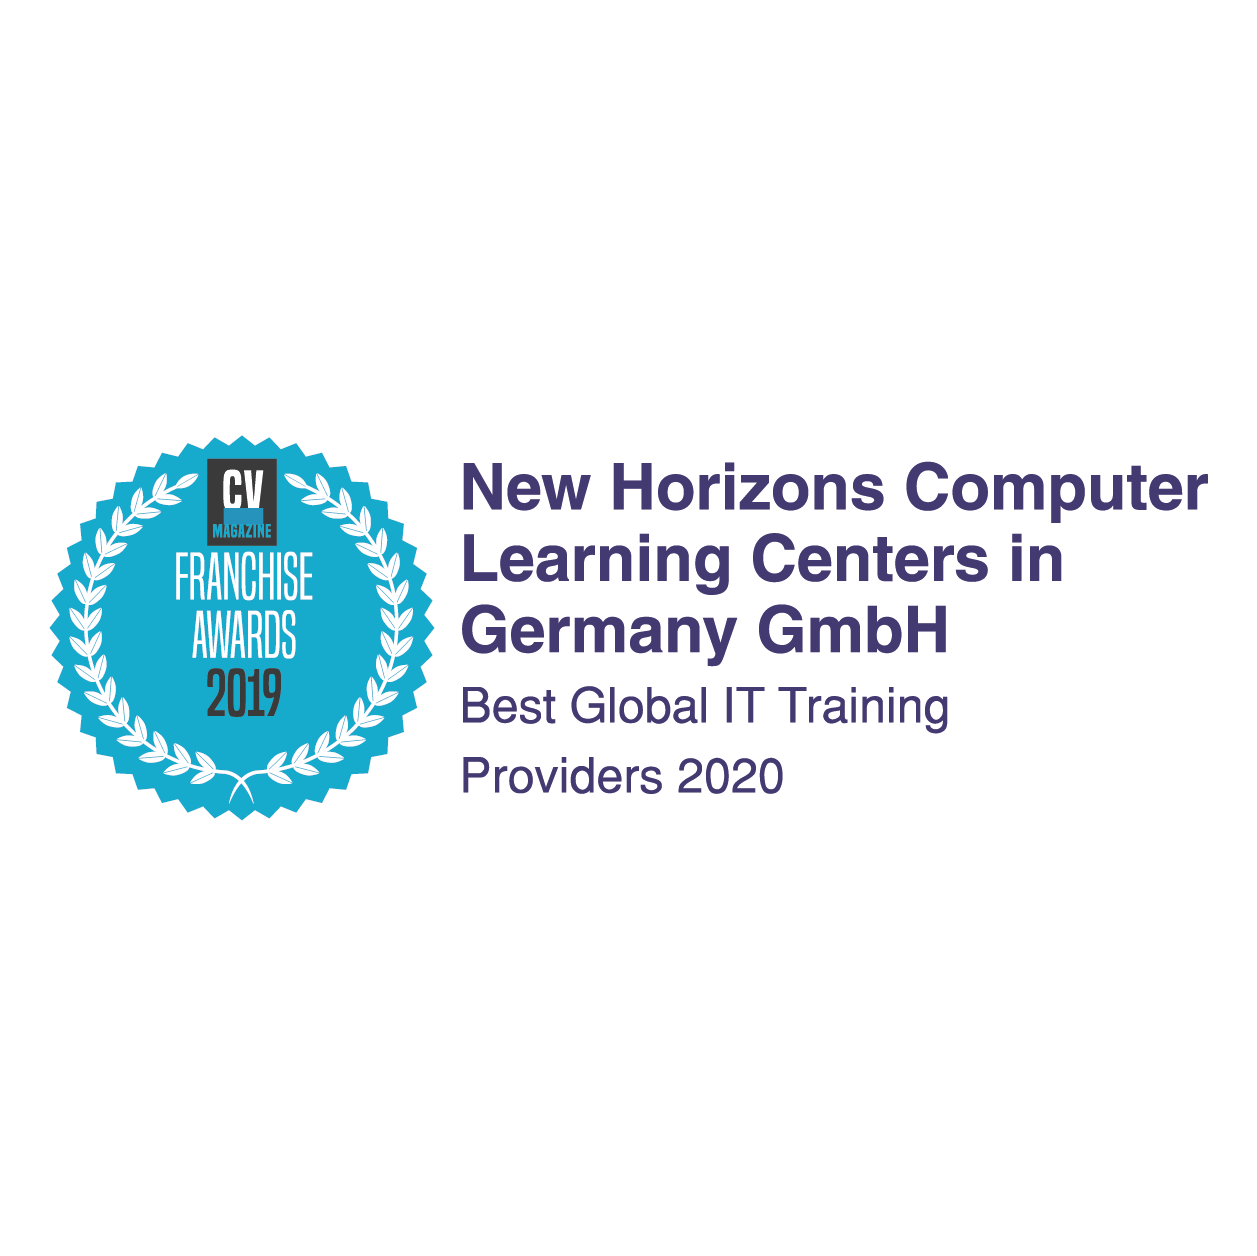 New-Horizons-CV-Technology-Innovator-2020-Awards-Winners